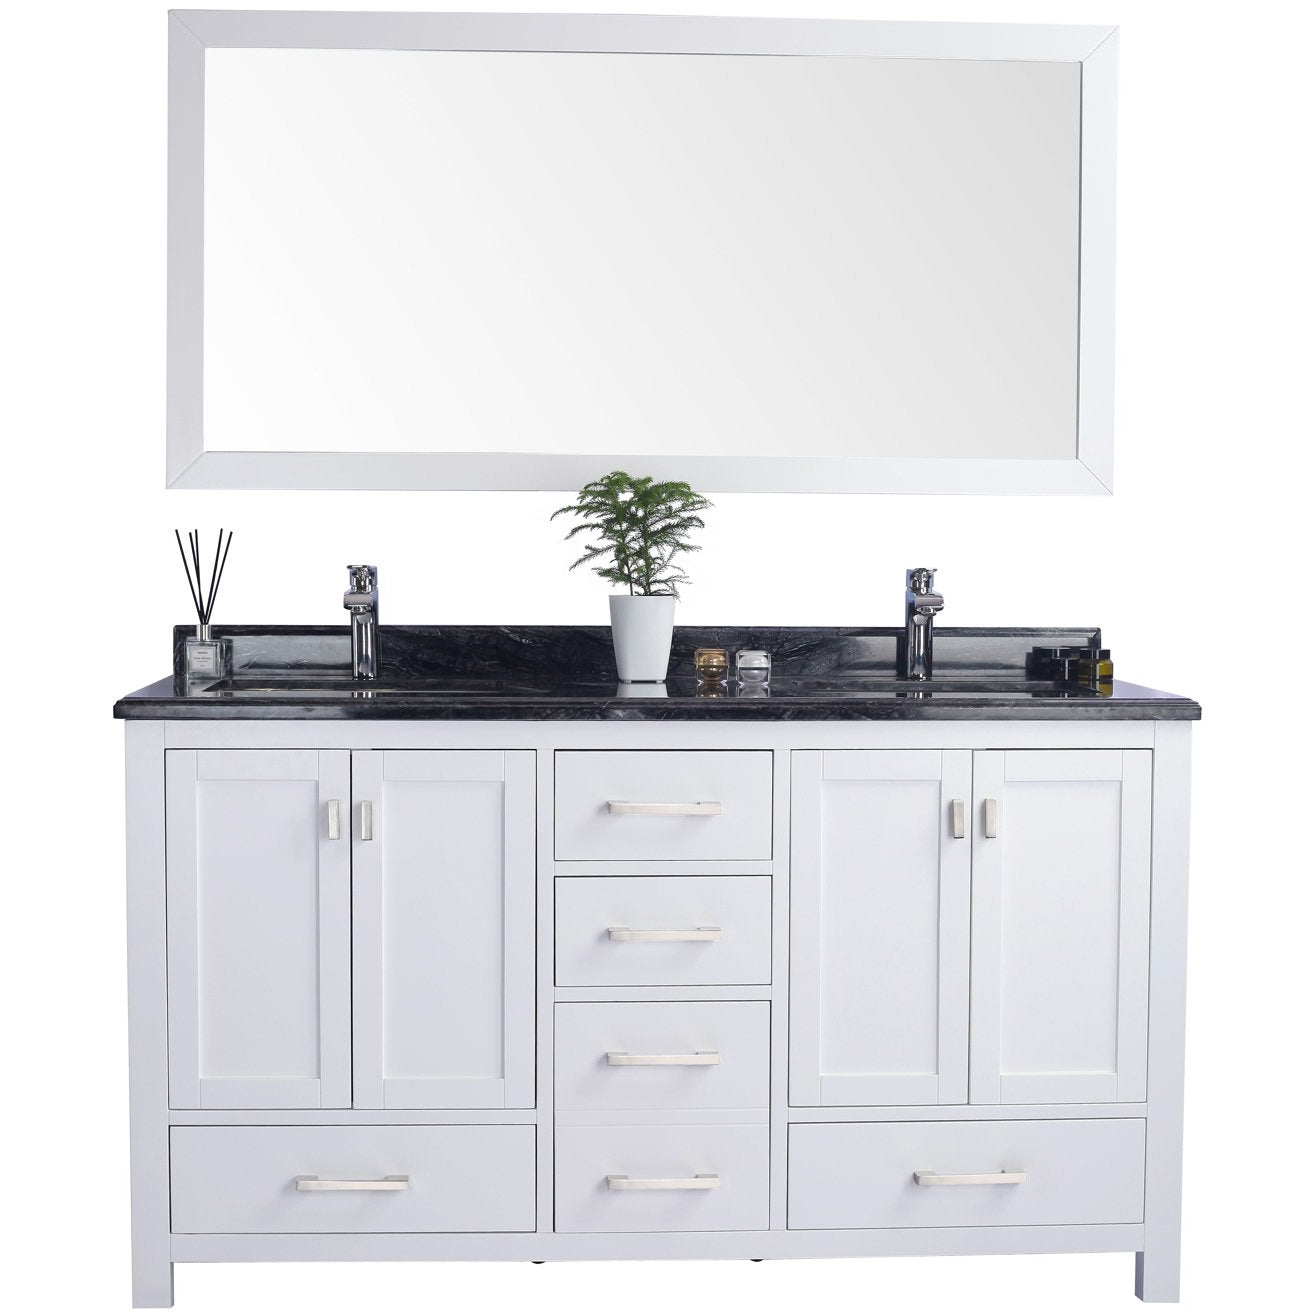 Wilson 60 - White Cabinet + Black Wood Countertop by Laviva